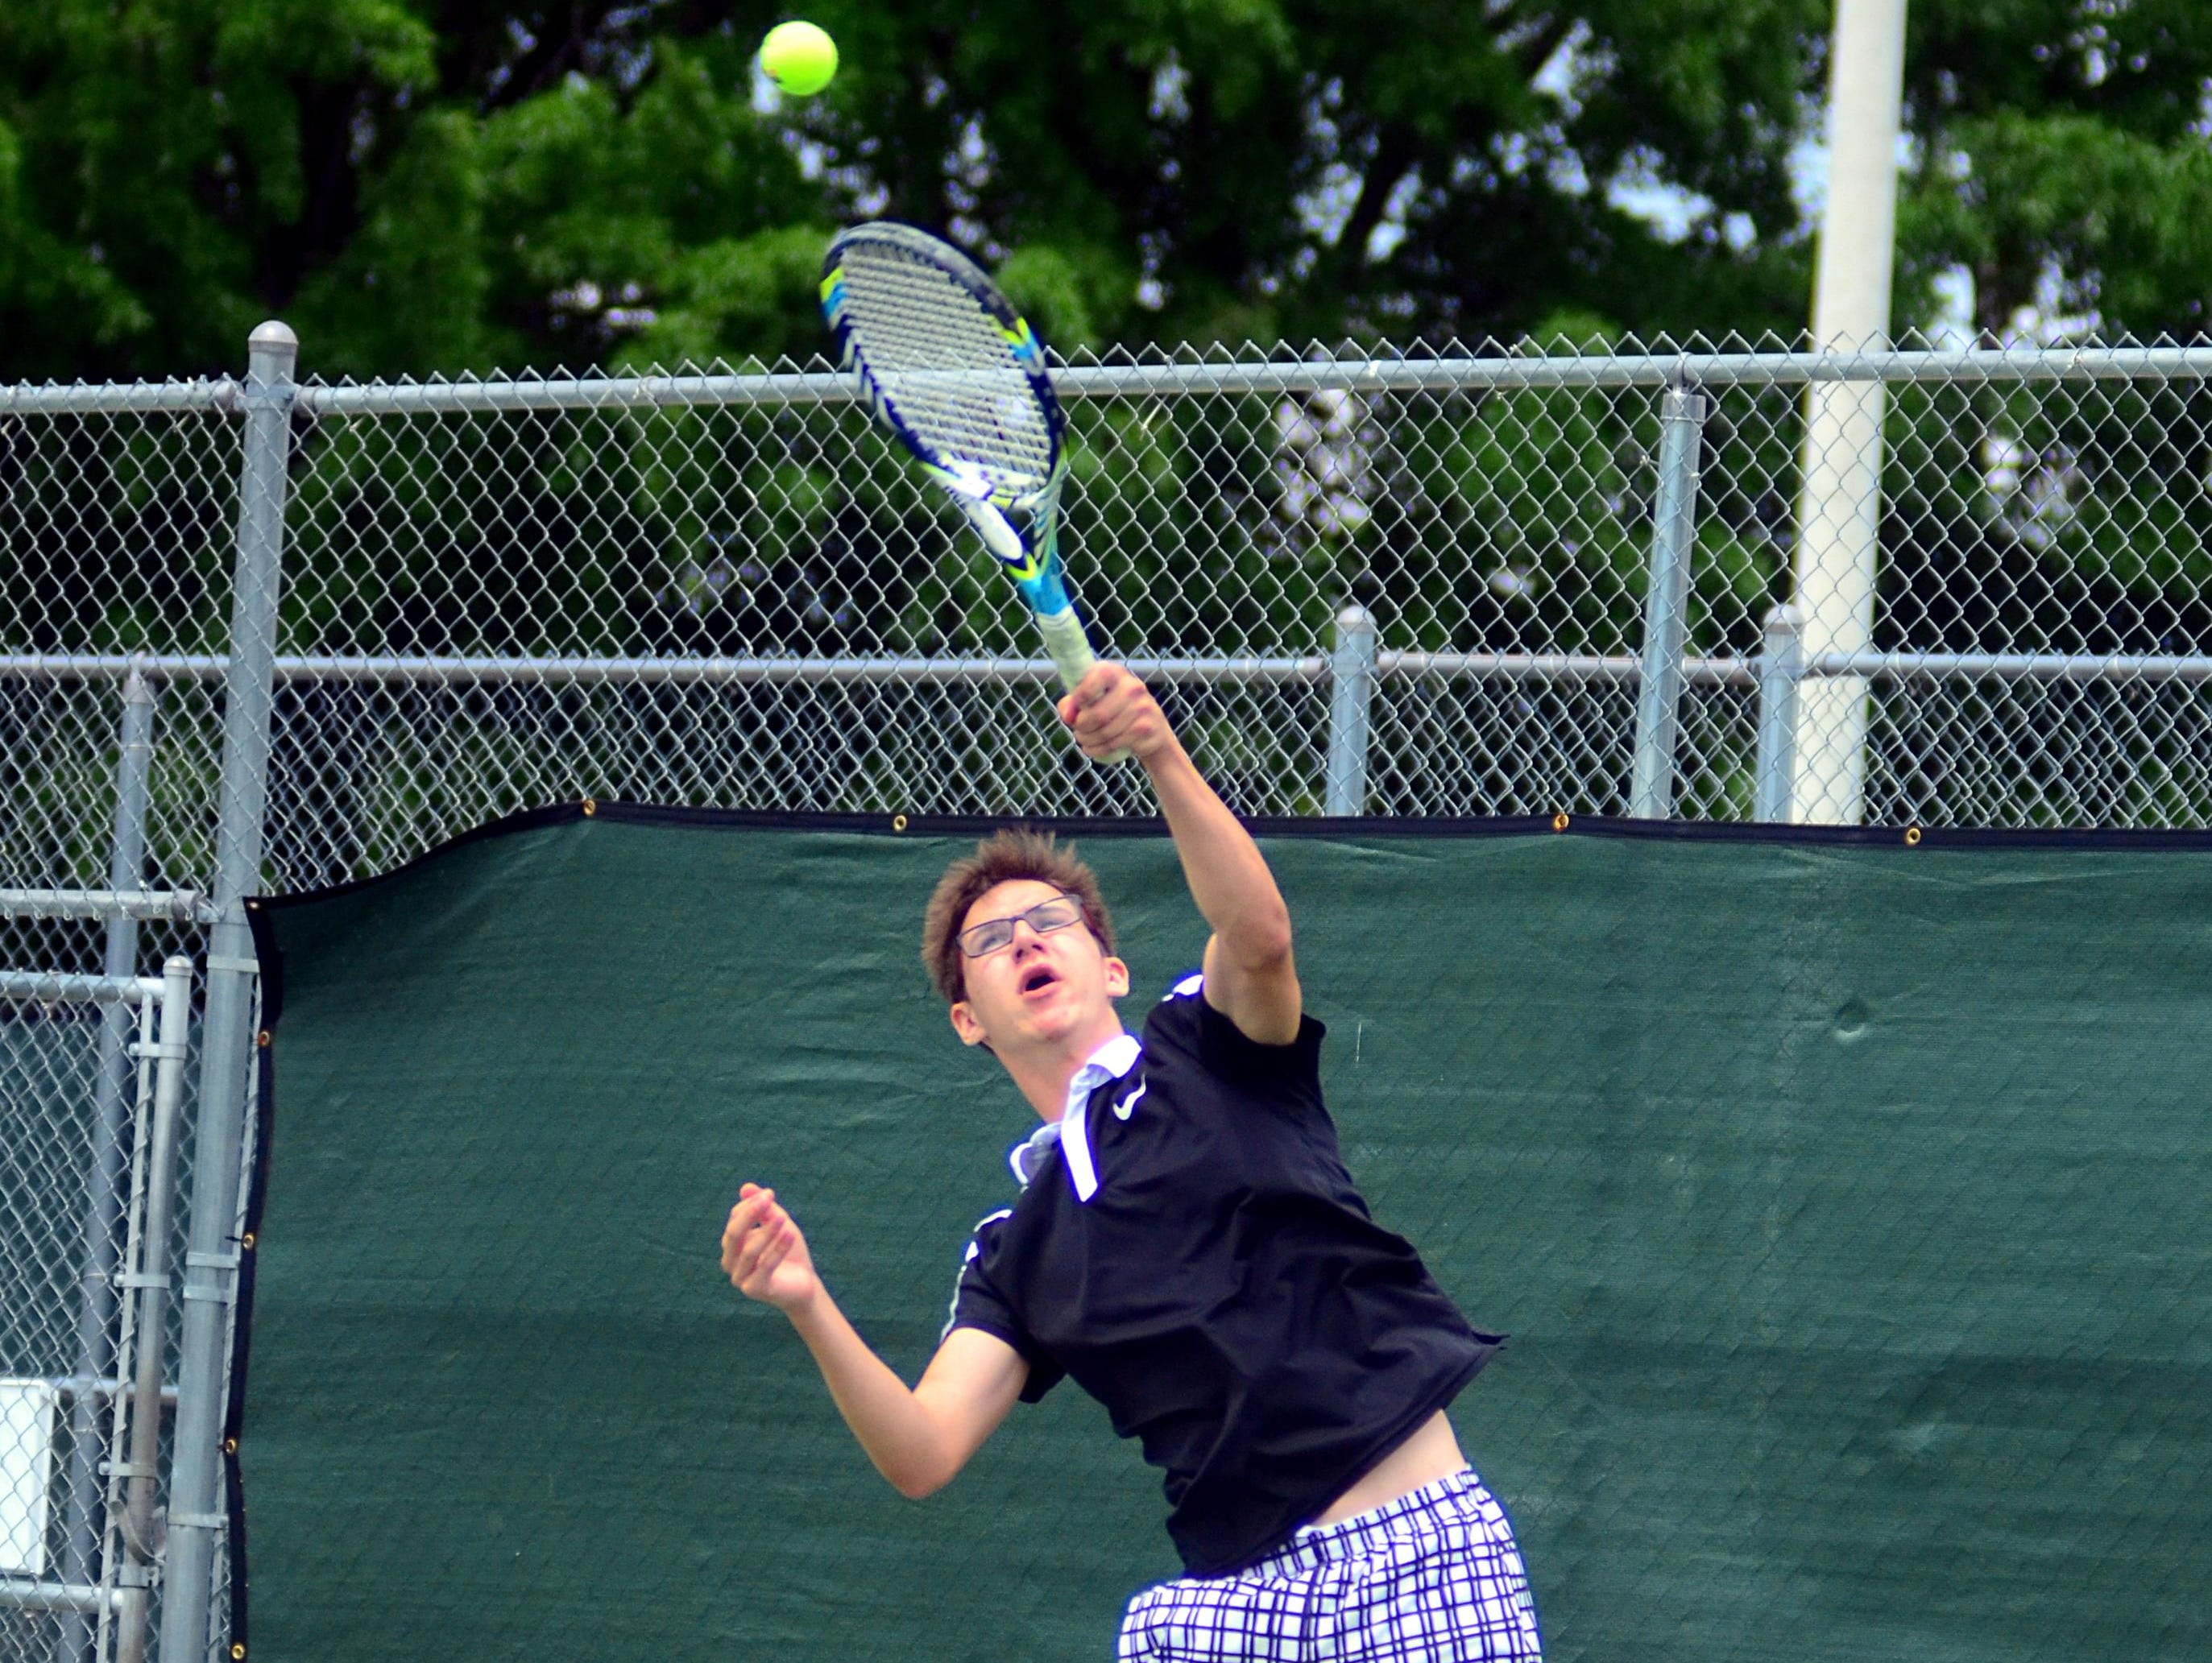 Hendersonville High senior Luke Jacob serves during his first-round singles match on Tuesday at the District 9-AAA Individual Tennis Tournament. Jacob advanced to the quarterfinals before suffering a straight-set loss to Station Camp senior Nathan Watson.